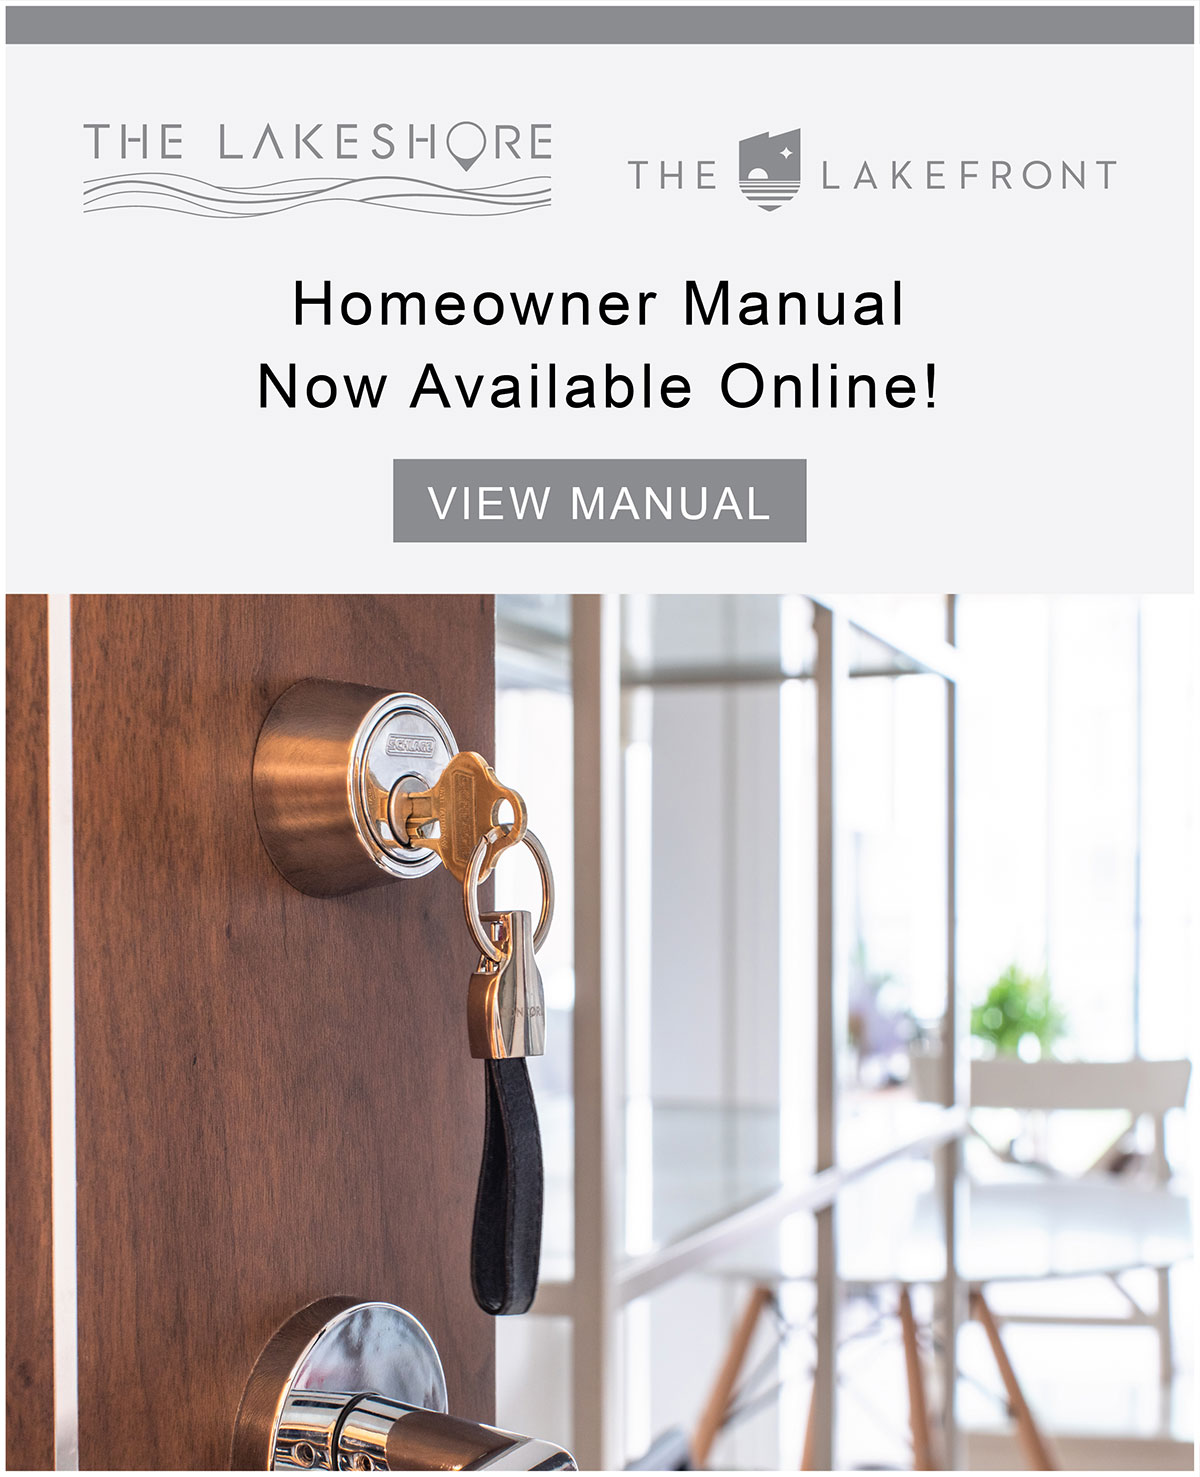 Homeowner Manual Now Available Online!